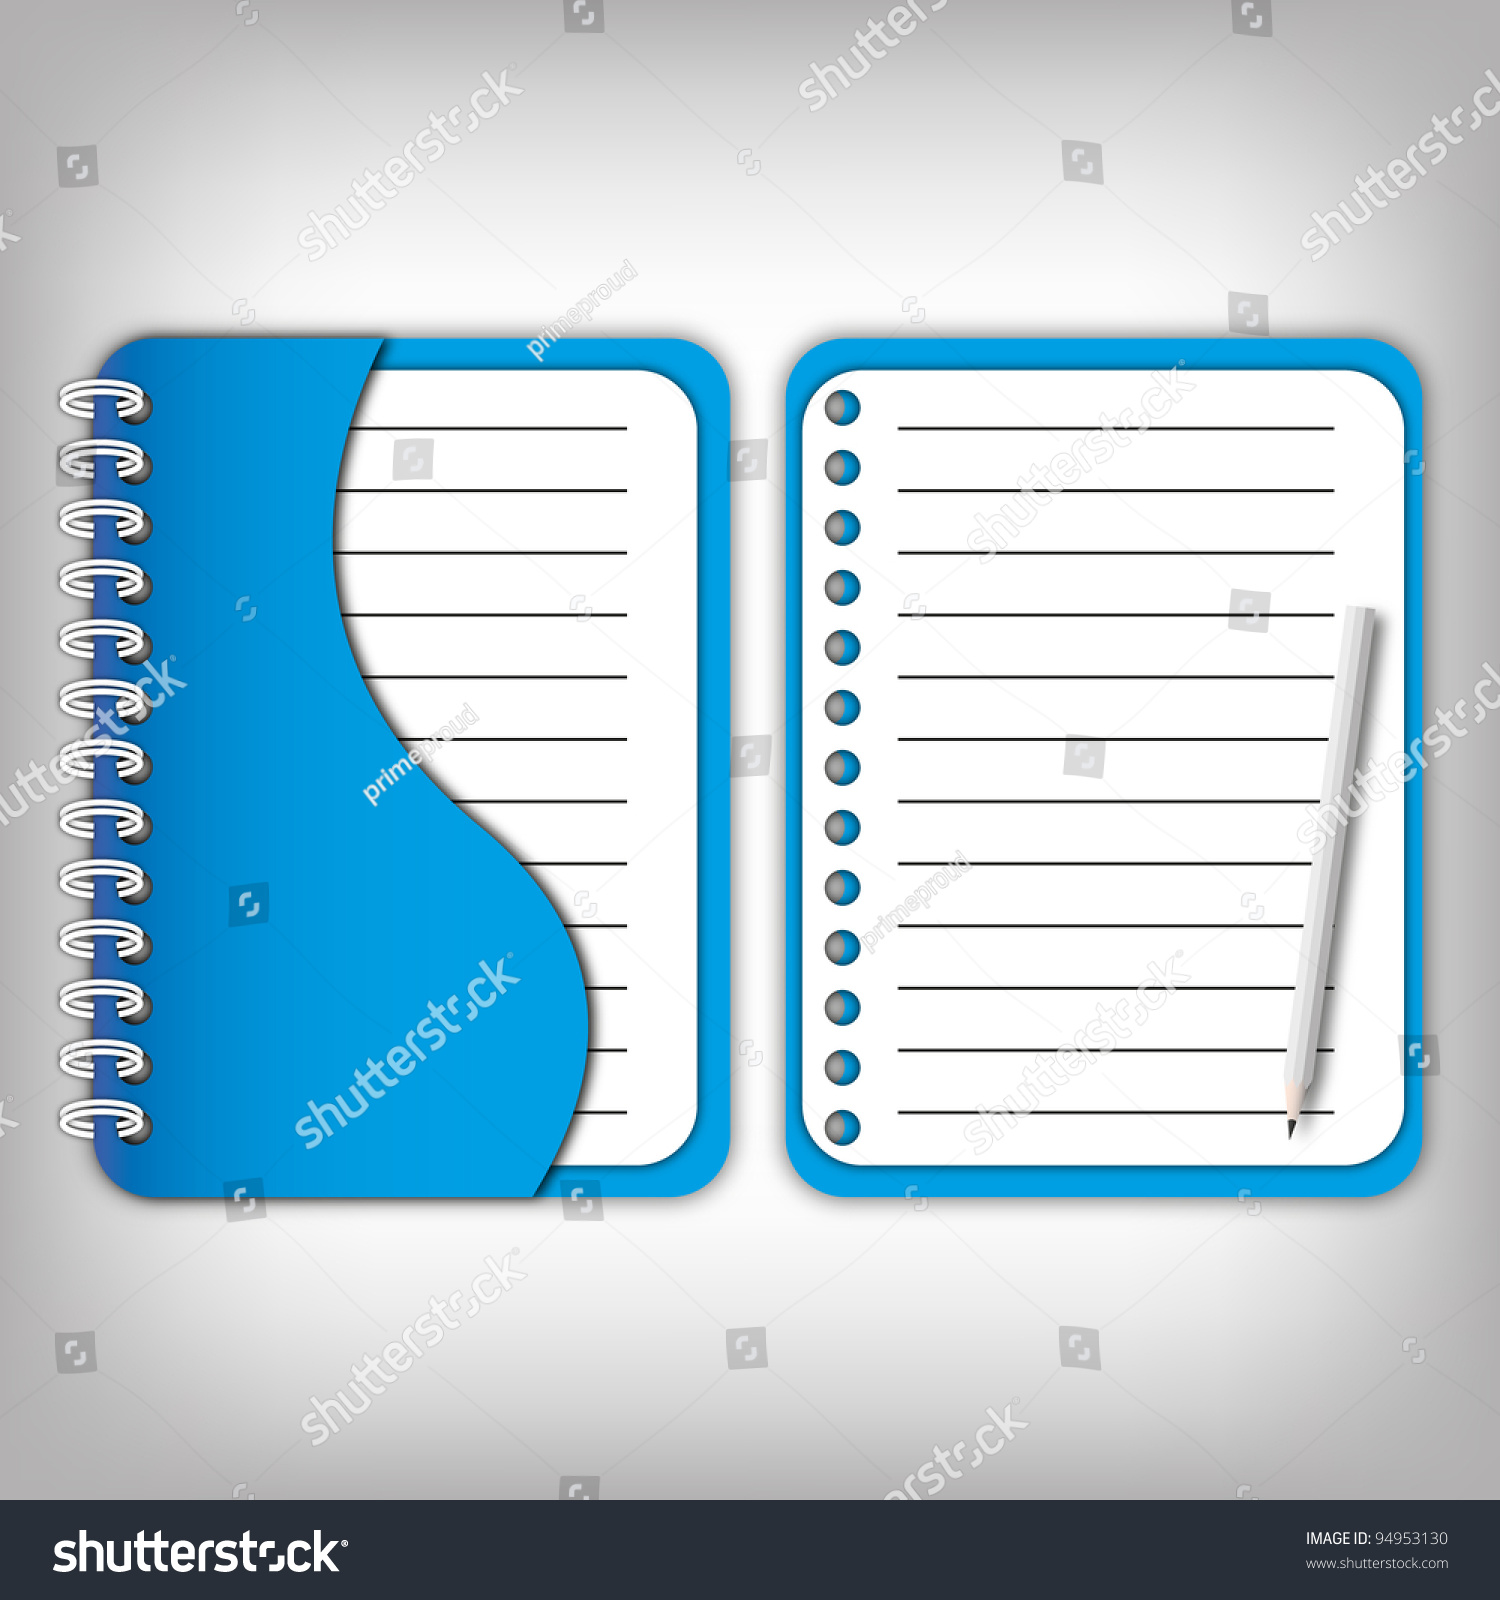 new design cover blue notebook and open page pencil stock save to a lightbox